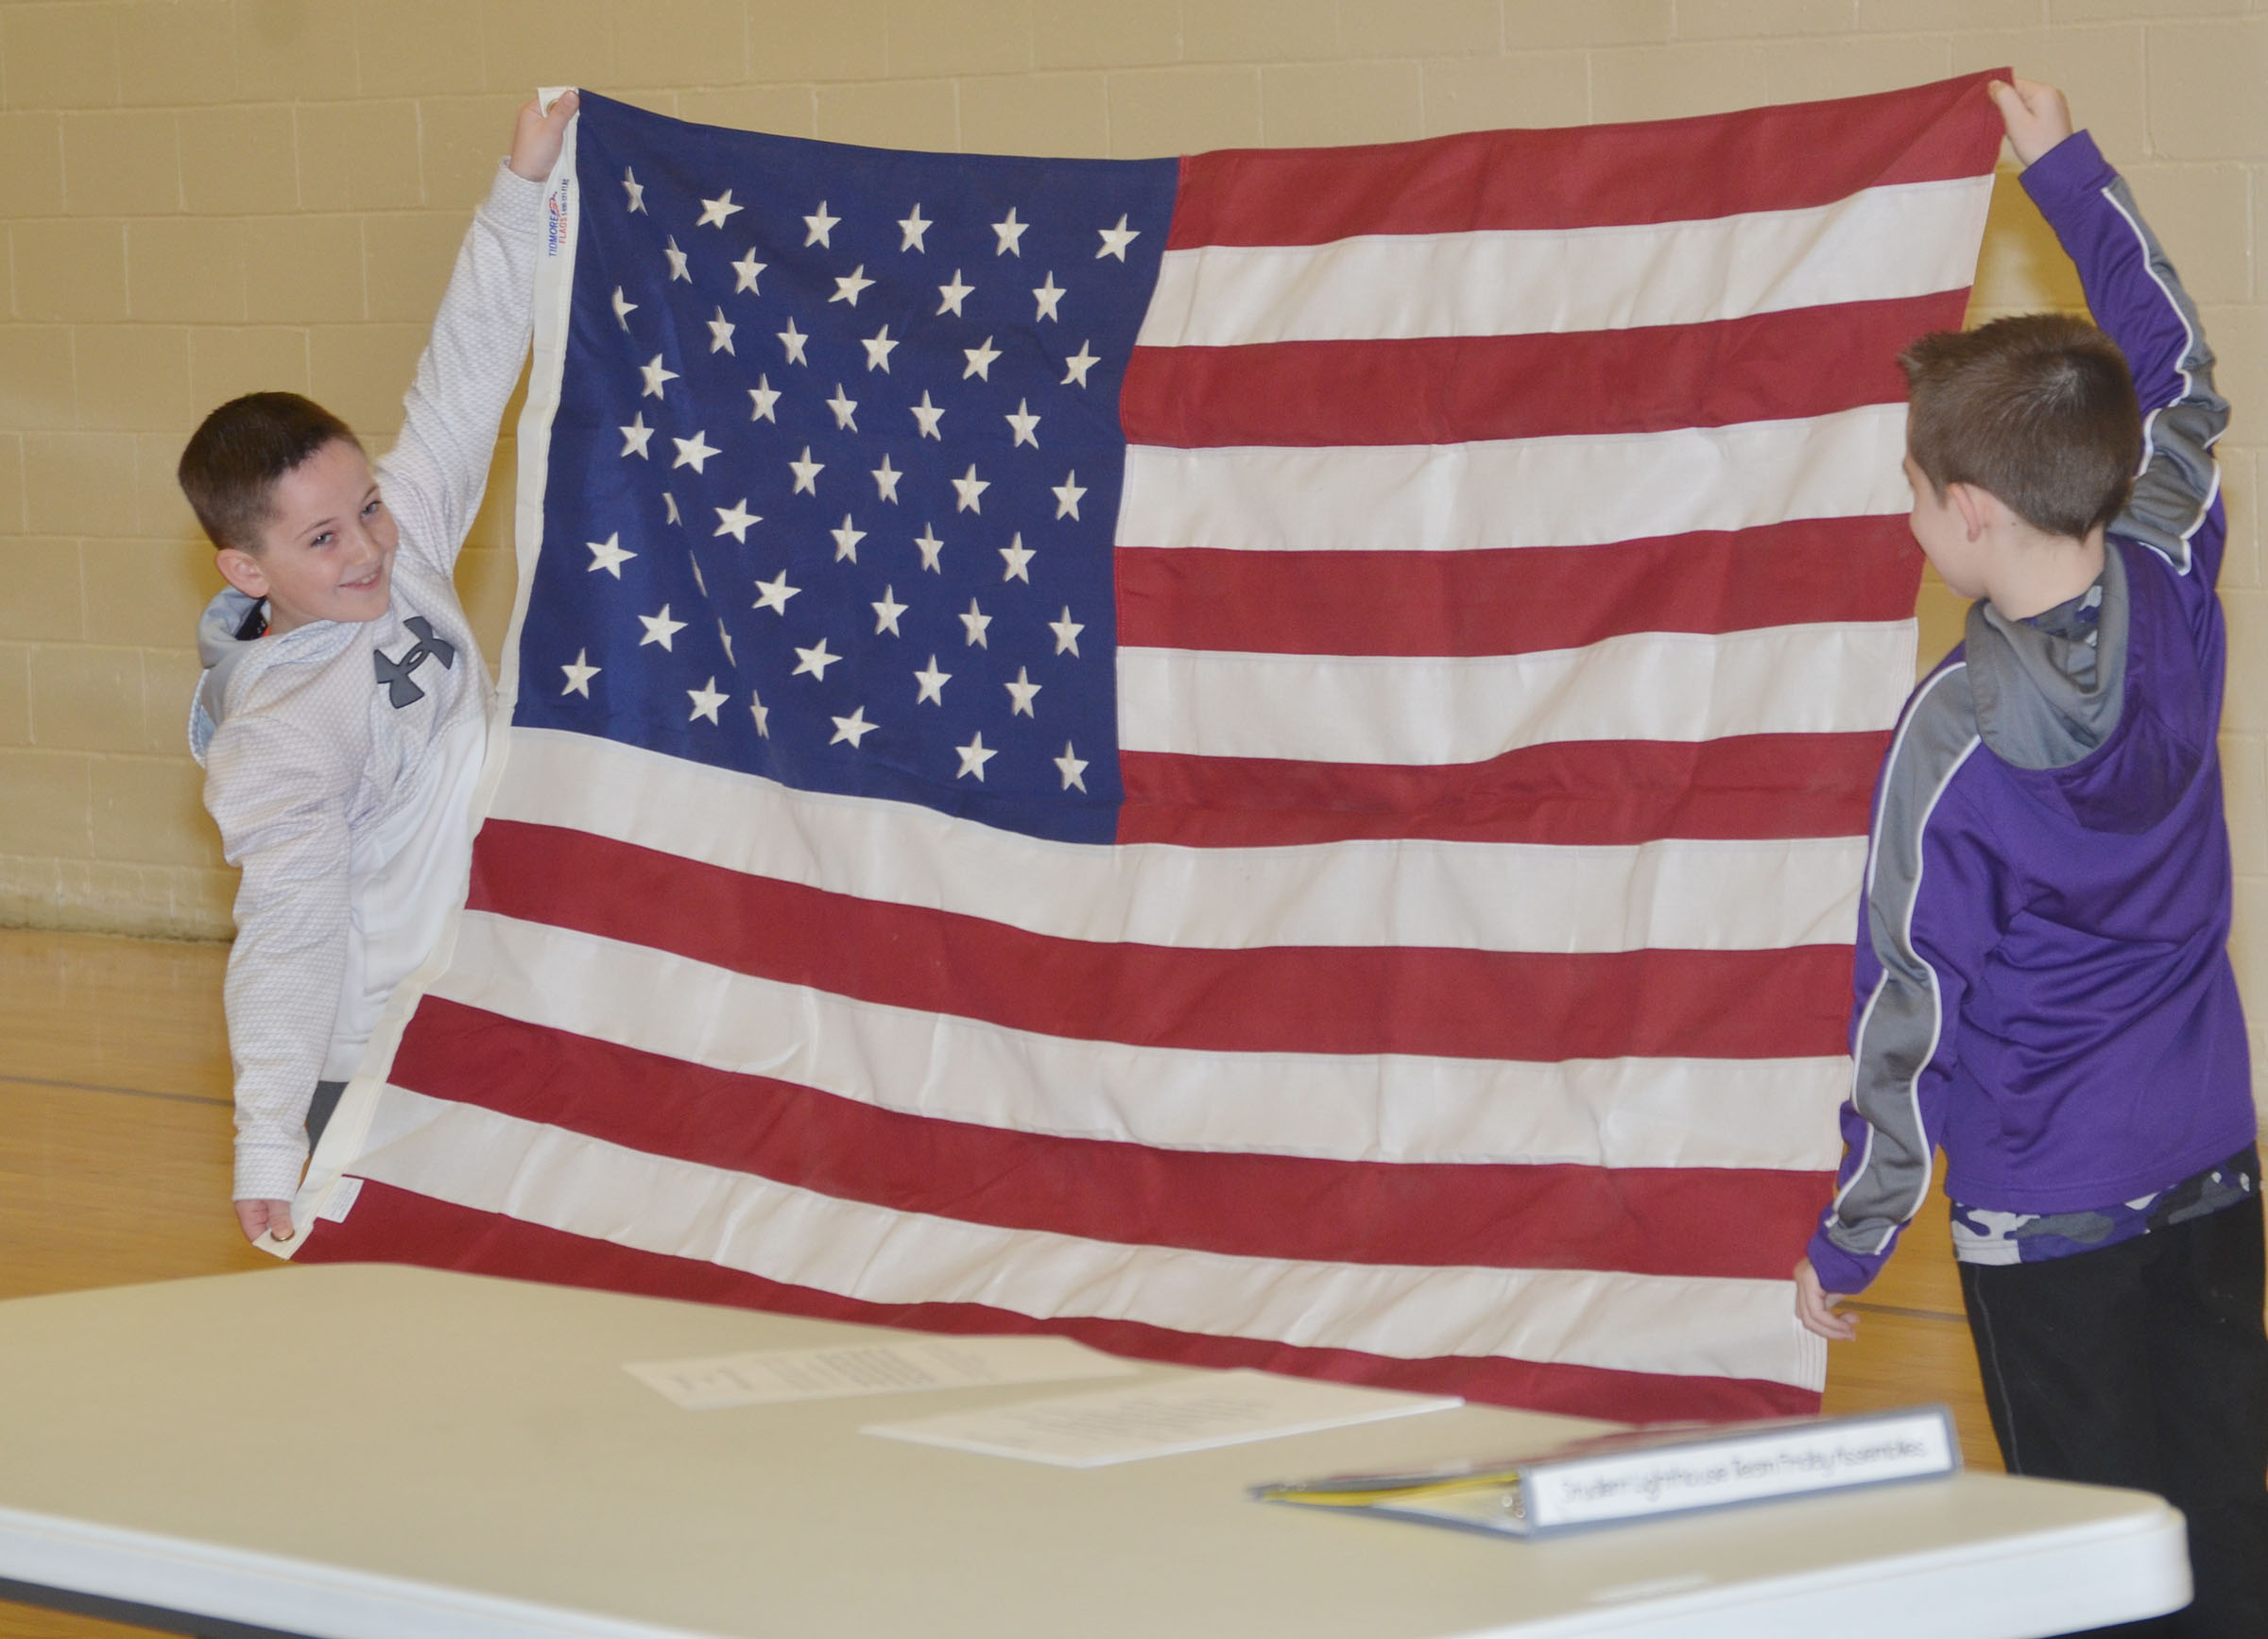 CES second-graders Luke Adkins, at left, and Lanigan Price hold the American flag as CES students say the Pledge of Allegiance.